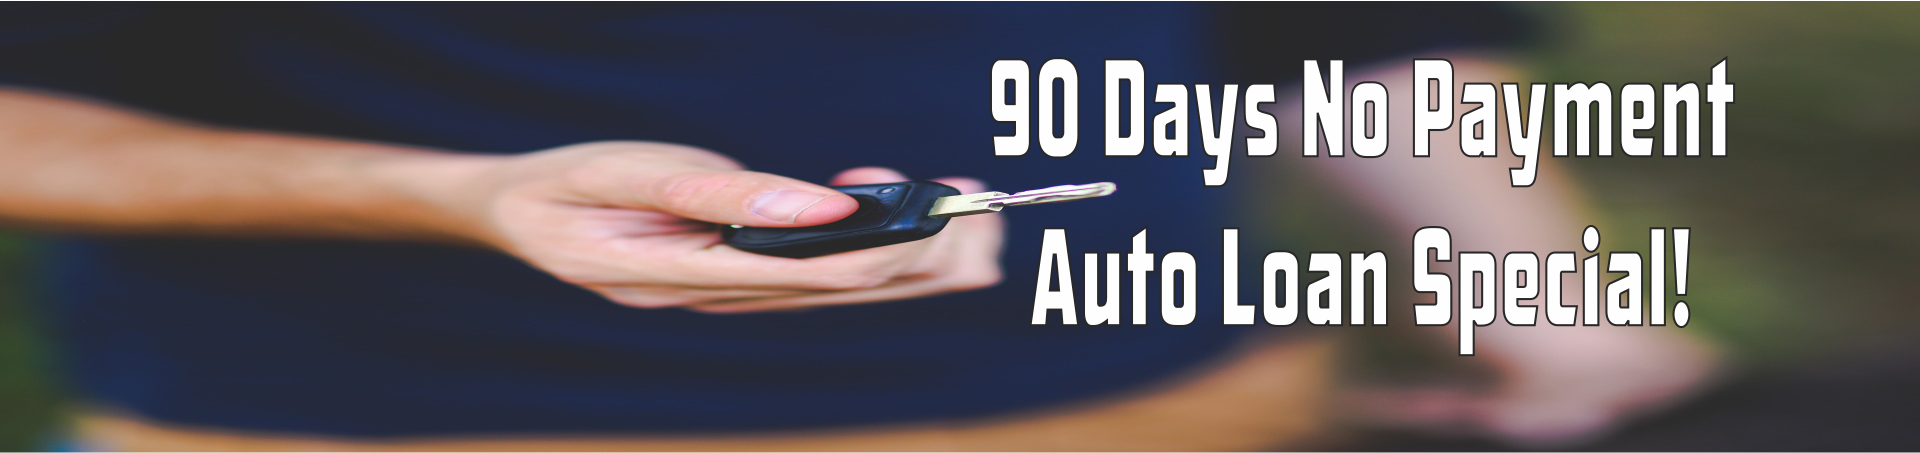 90 Days No Payment Auto Loan Special